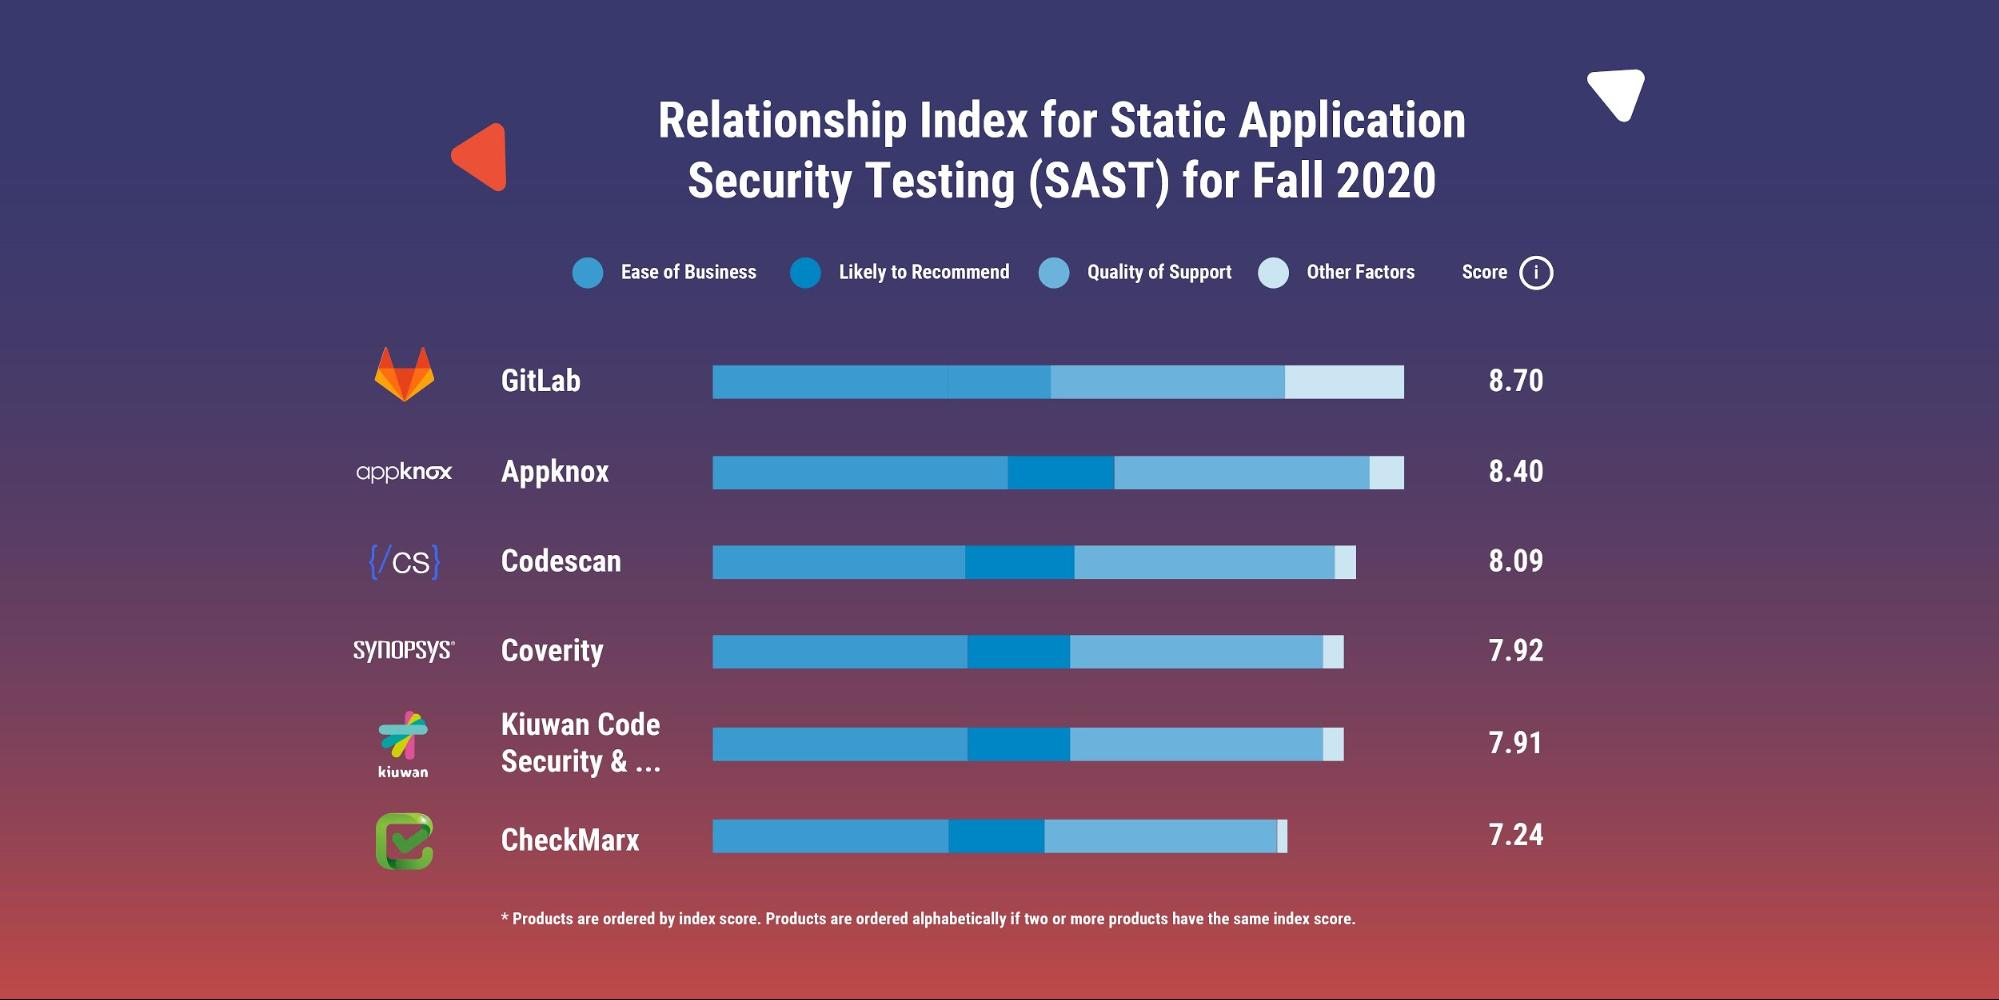 Relationship Index for Static Application security testing (SAST) for Fall in 2020